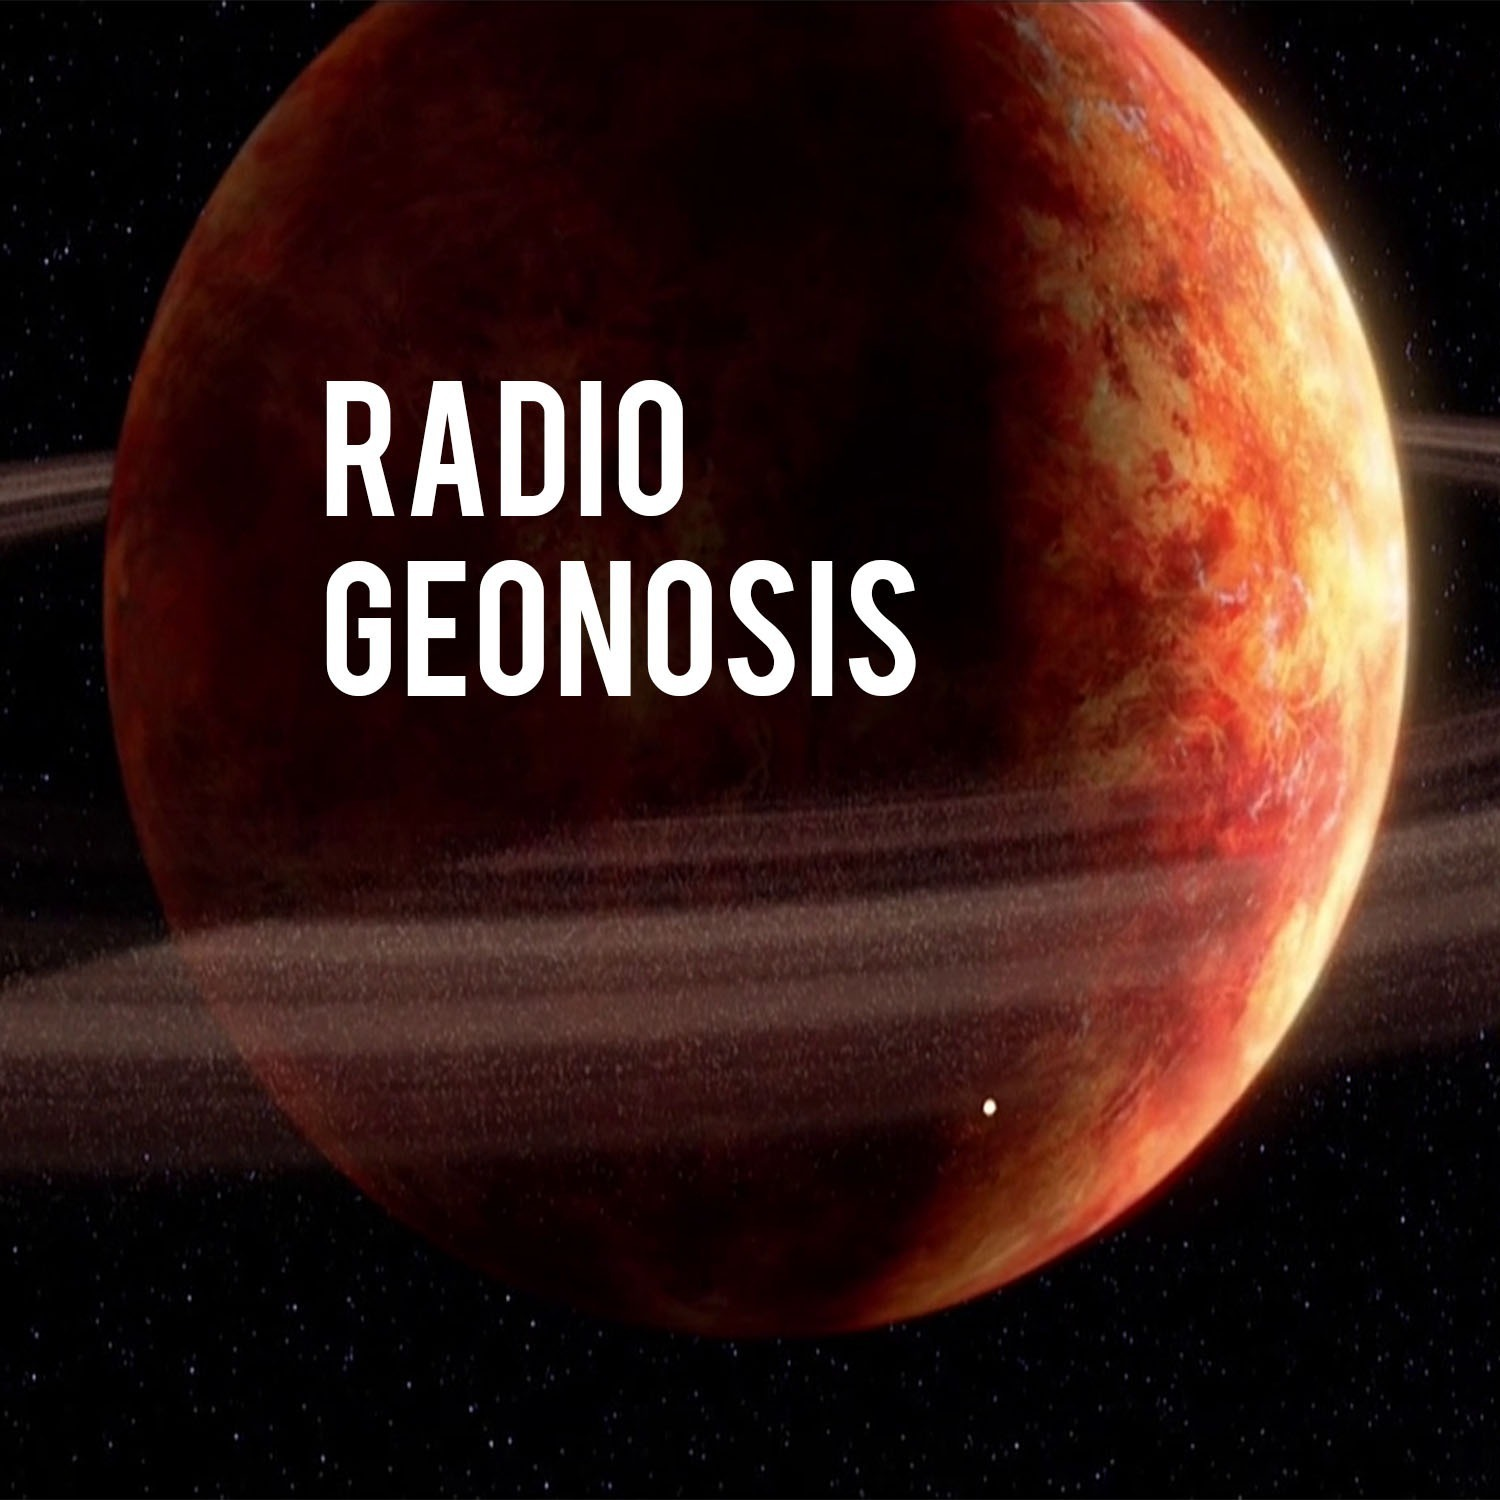 049 - Radio Geonosis Ep. 49 - Celebration Chicago